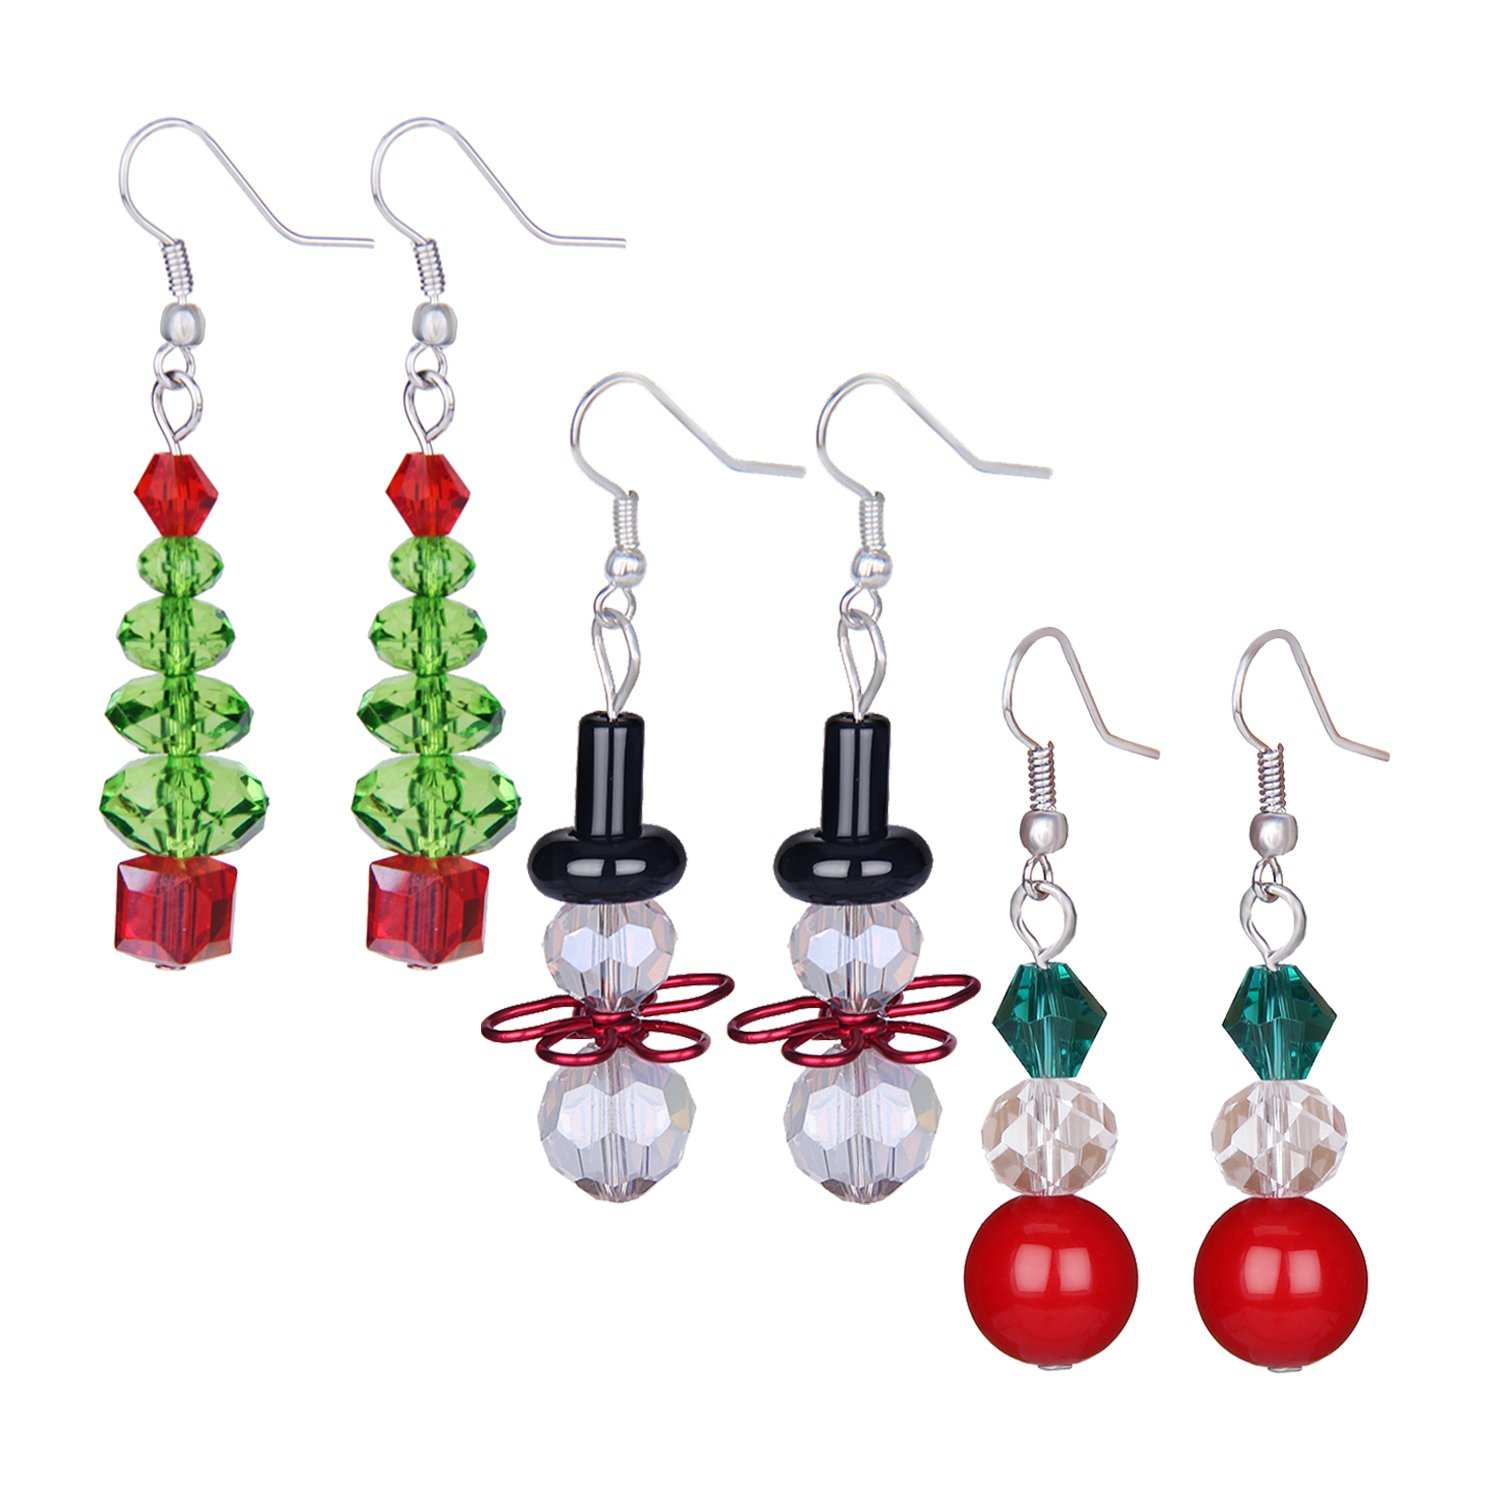 Zhenhui Handcrafted Clear Crystal Tree Earrings Set for Women Girls with White Snowman Red Beads Multicored Glass Dangle Best Valentine's Day Gift